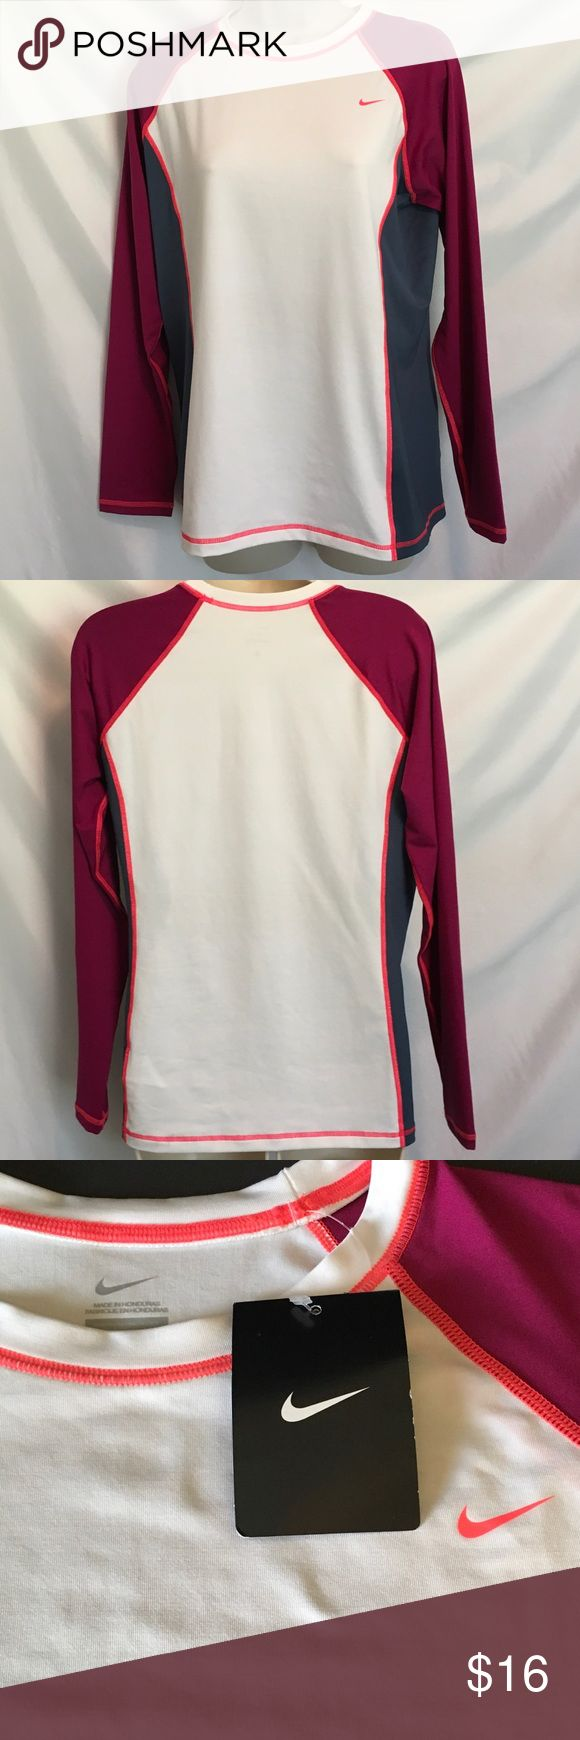 Women's Nike long sleeve shirt NWT nice women's work out top. 90% polyester 10% spandex Nike Tops Tees - Long Sleeve